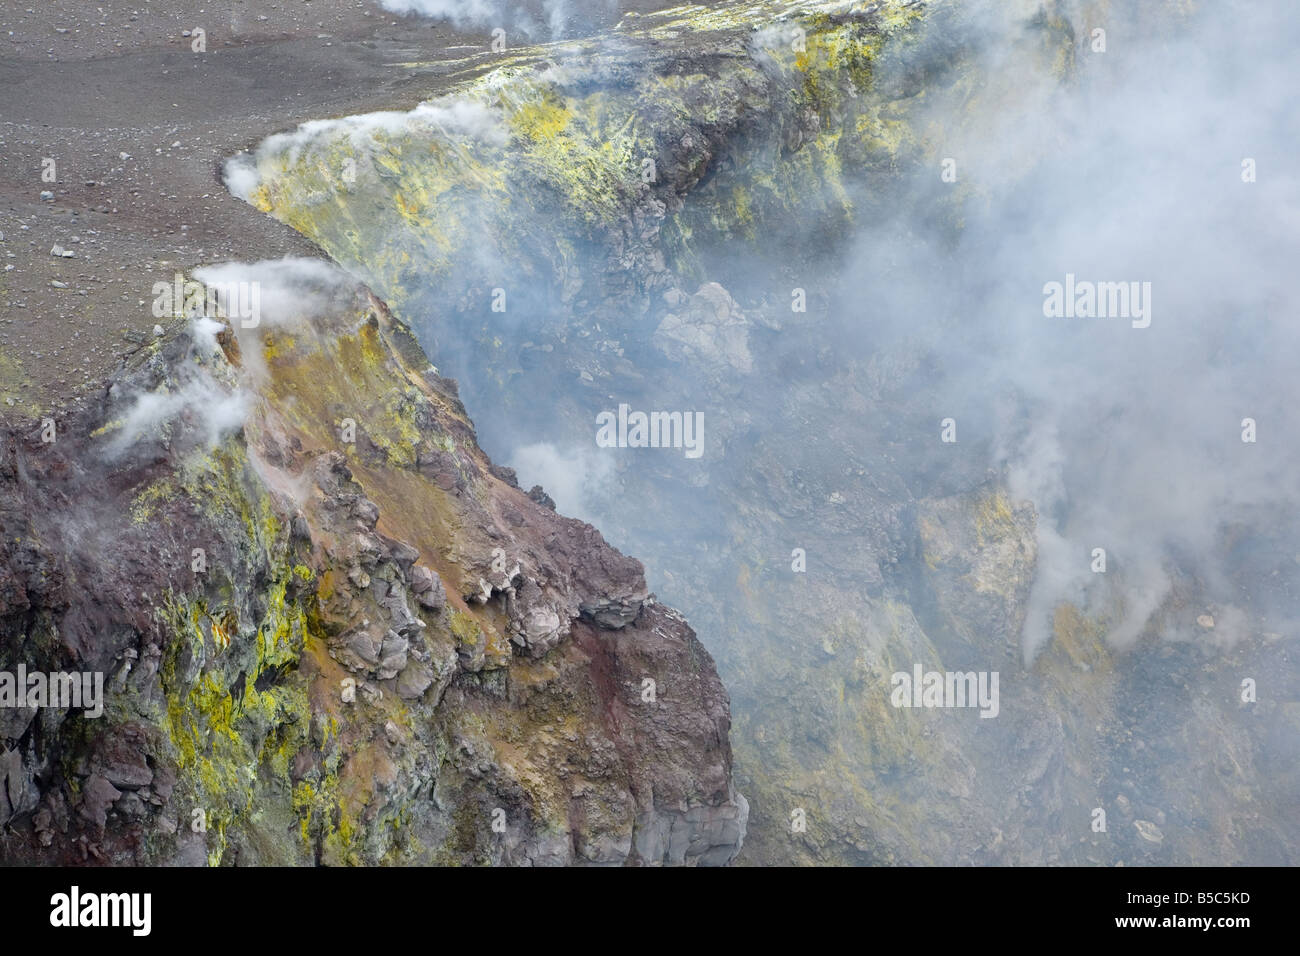 Mt Etna volcano's steep inner crater walls with fumaroles and sulphur deposits - Stock Image